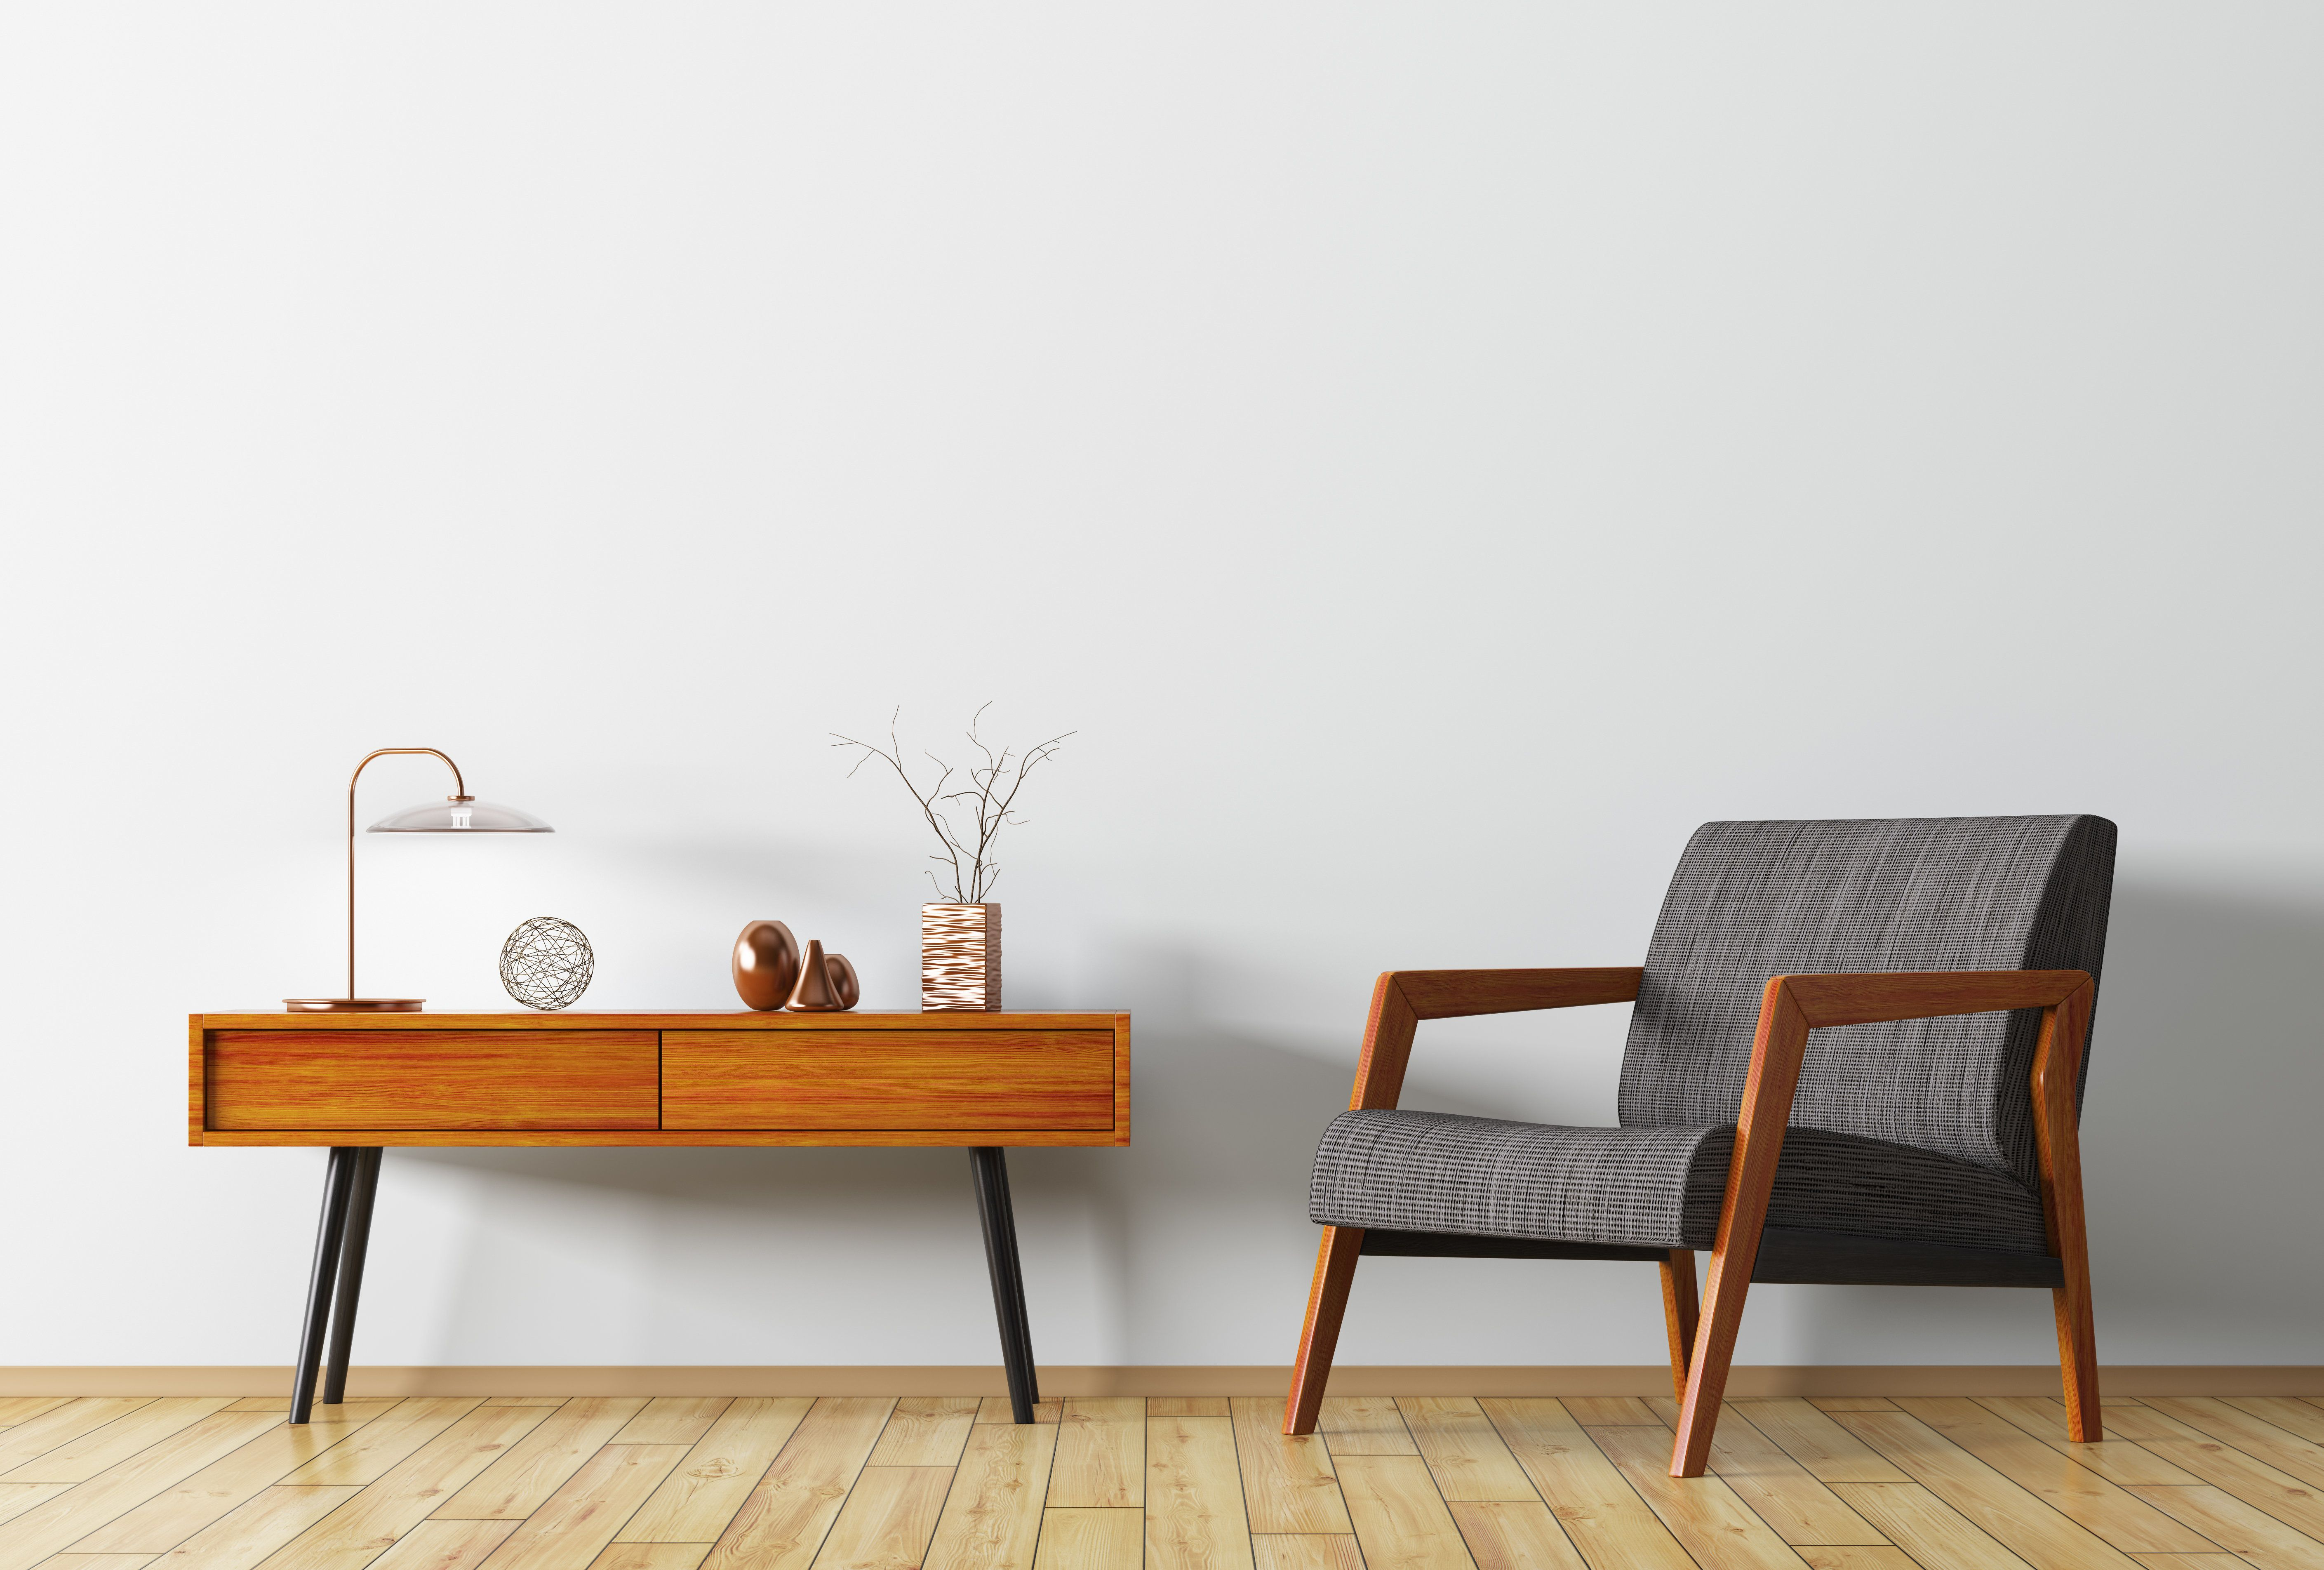 The Best Sites For Affordable Mid Century Modern Furniture And Decor, In  One Exhaustive List